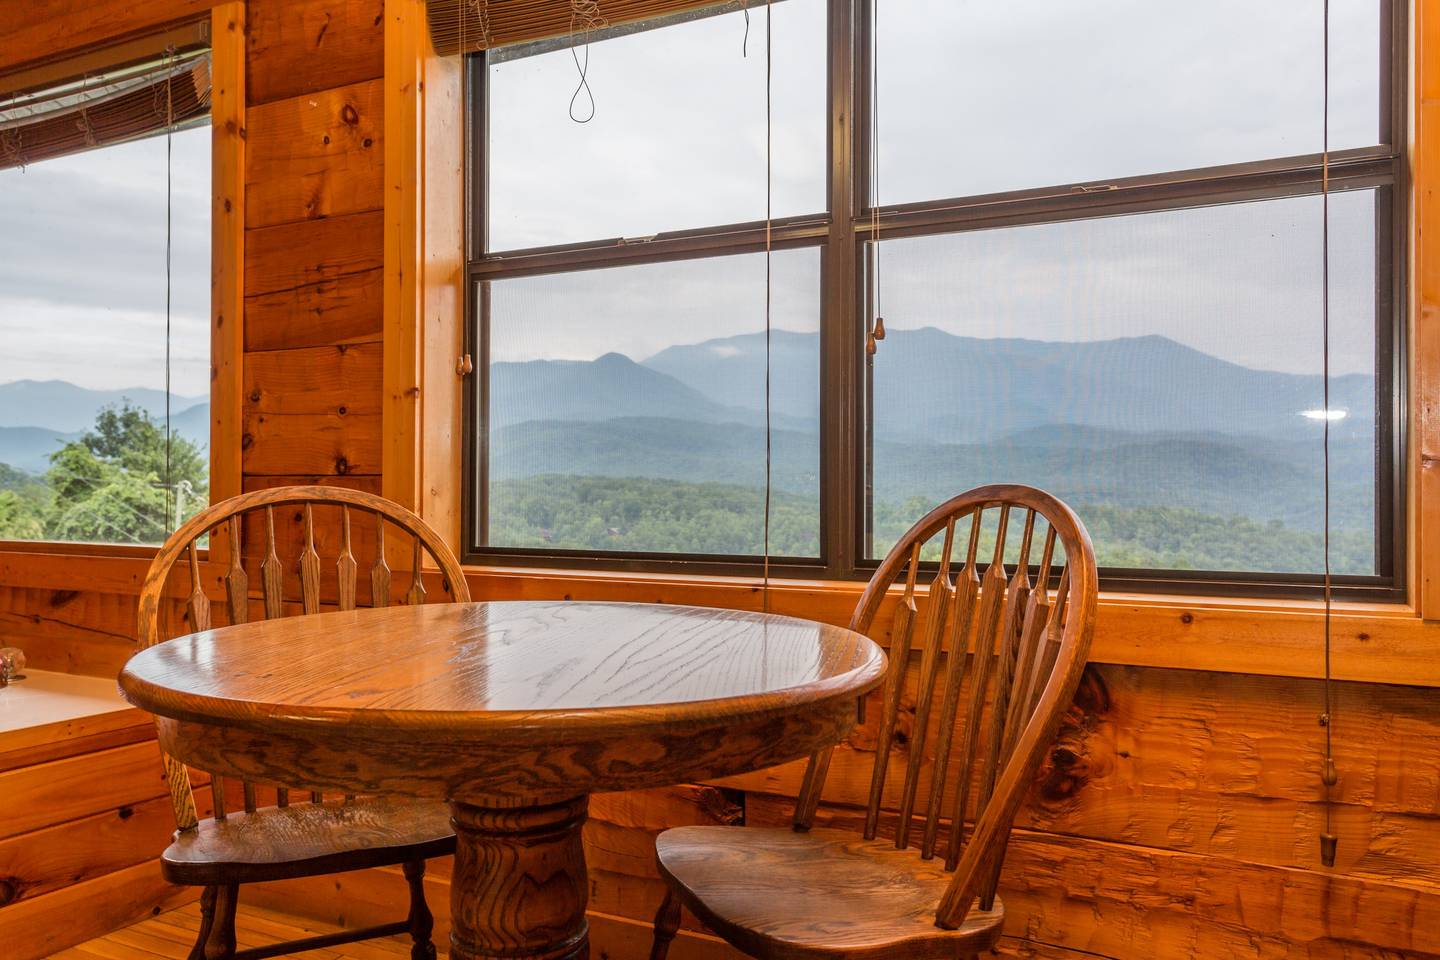 Apartment Sensational Views GSMNP Near DwTn Gatlinburg photo 18672428